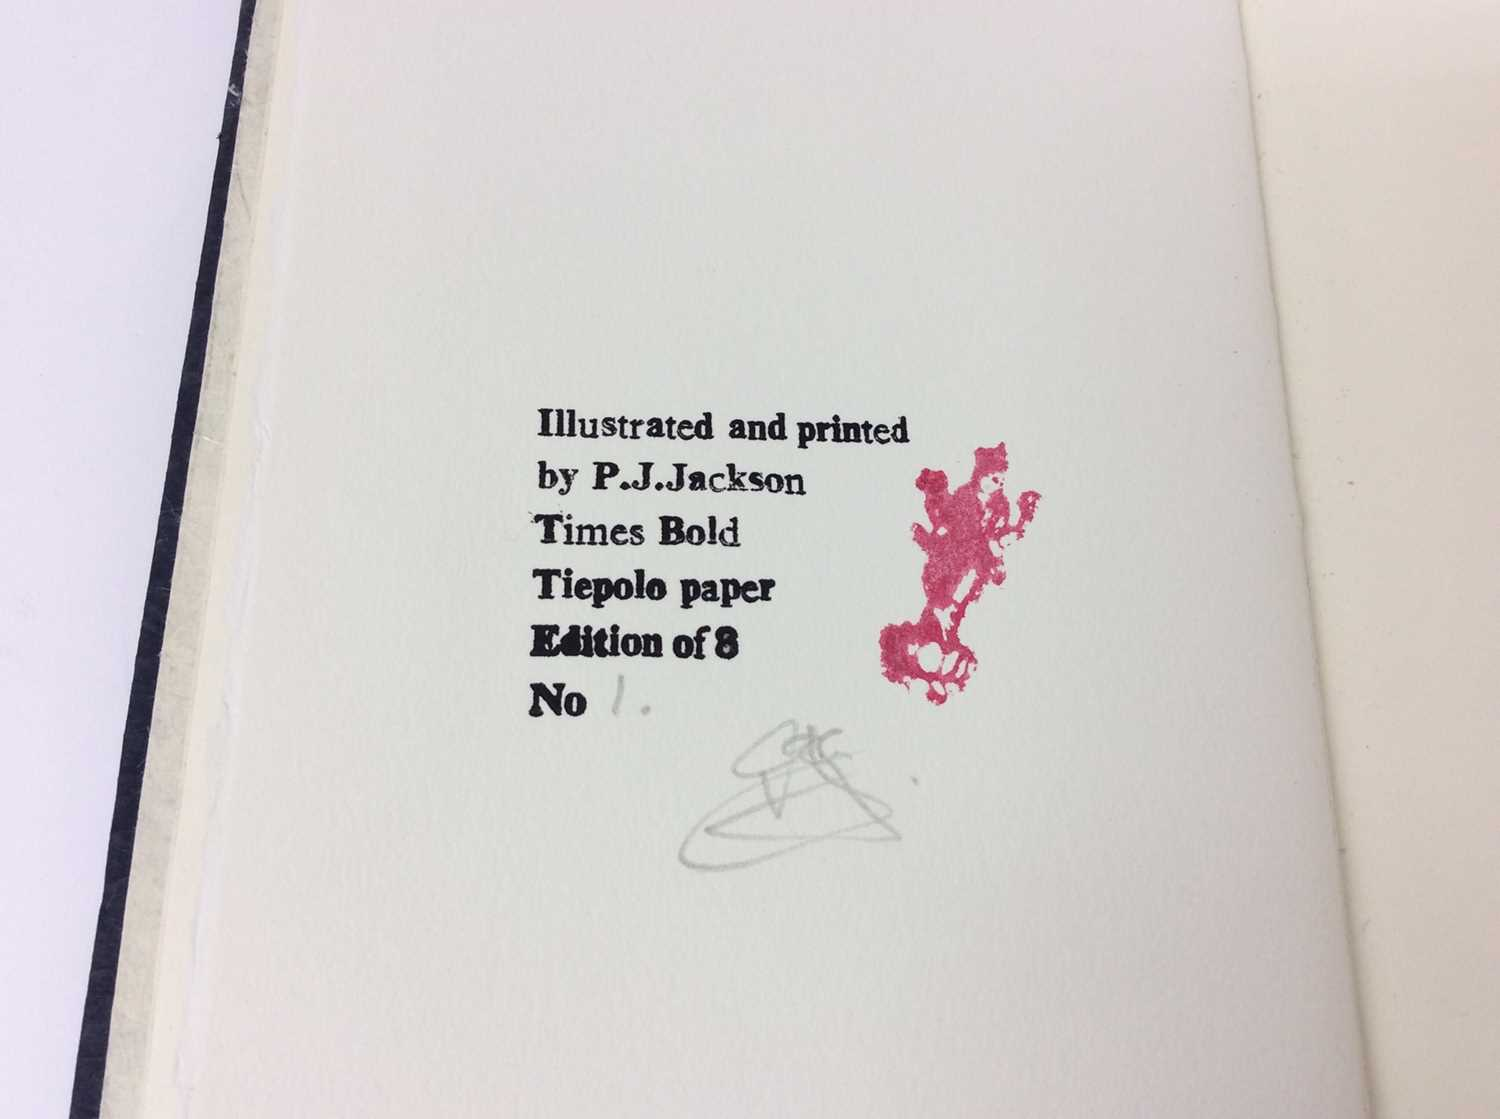 P. J. Jackson - three very limited edition private publications - Image 4 of 11